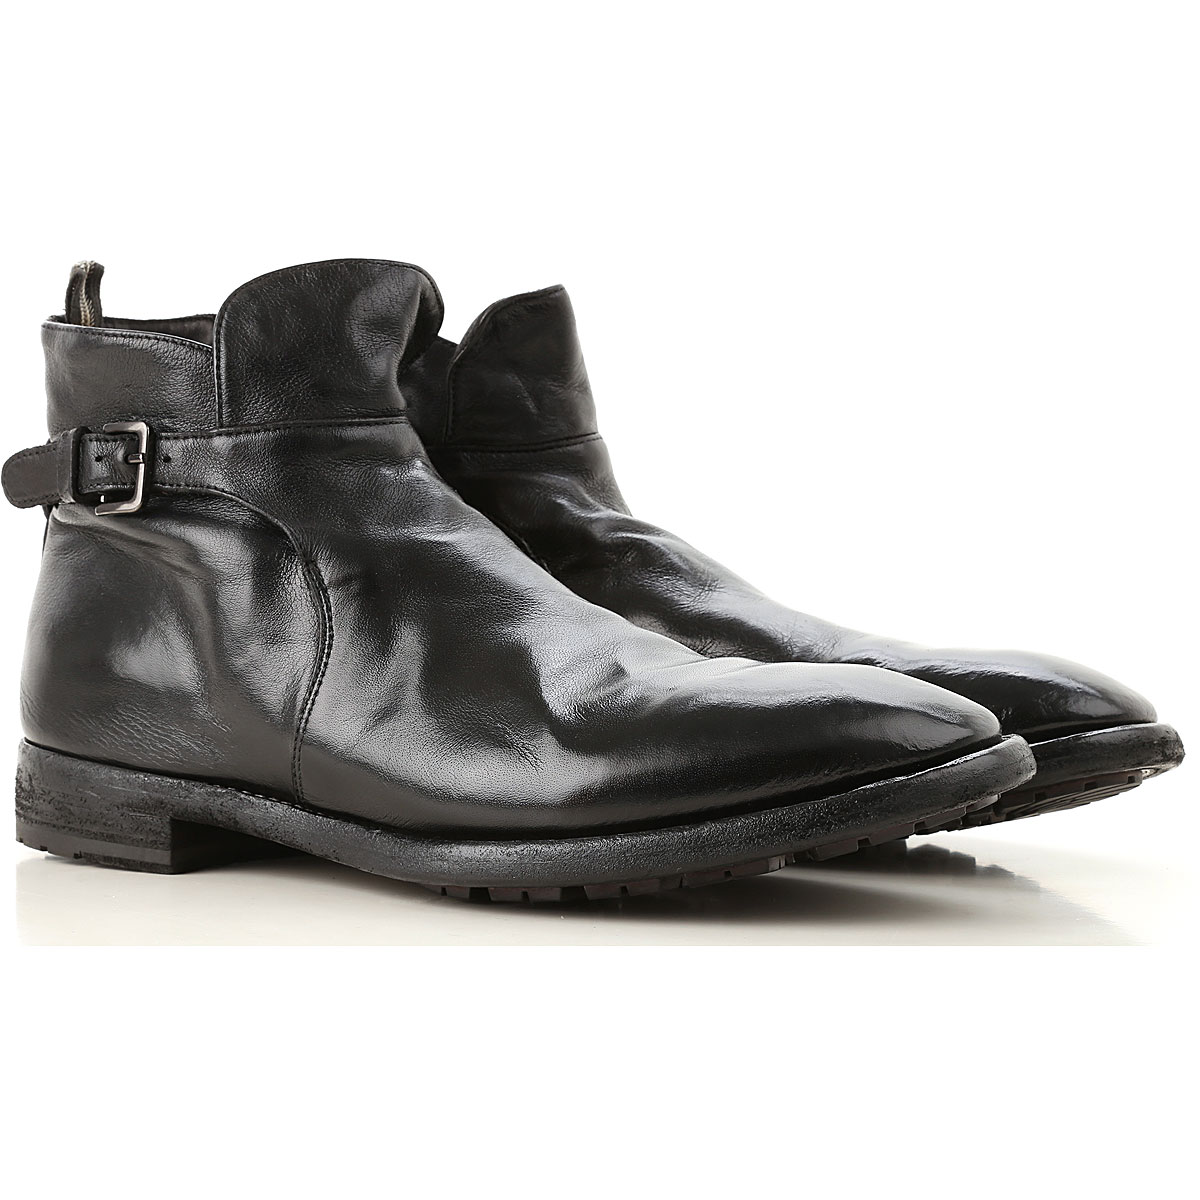 Image of Officine Creative Boots for Men, Booties, Black, Leather, 2017, 10 7.5 8 8.5 9 9.5